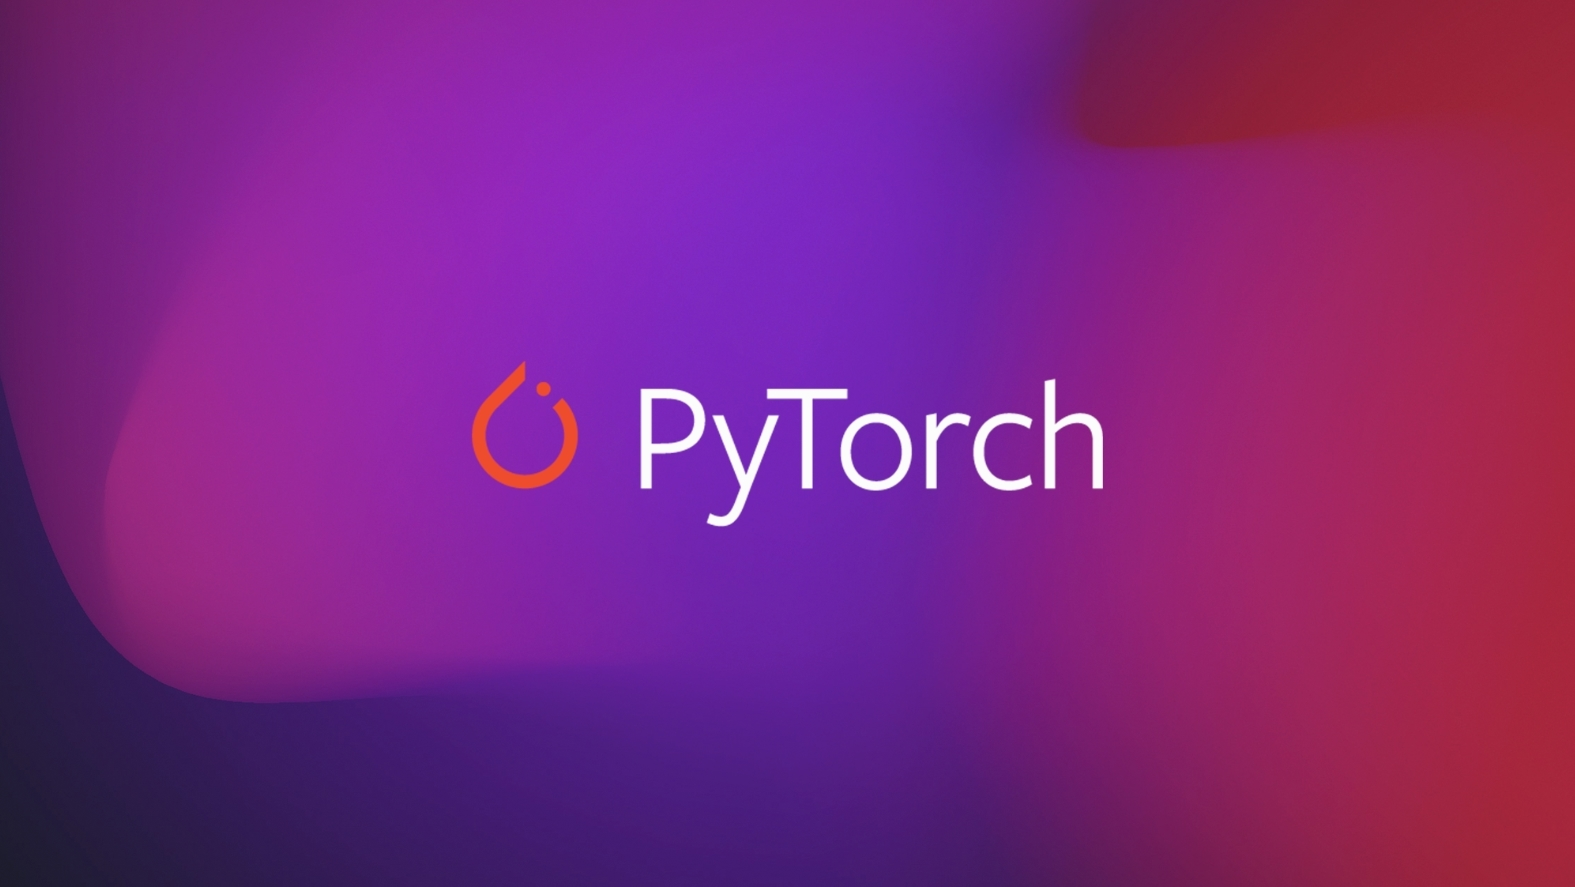 PyTorch community inches closer to 1.0 release